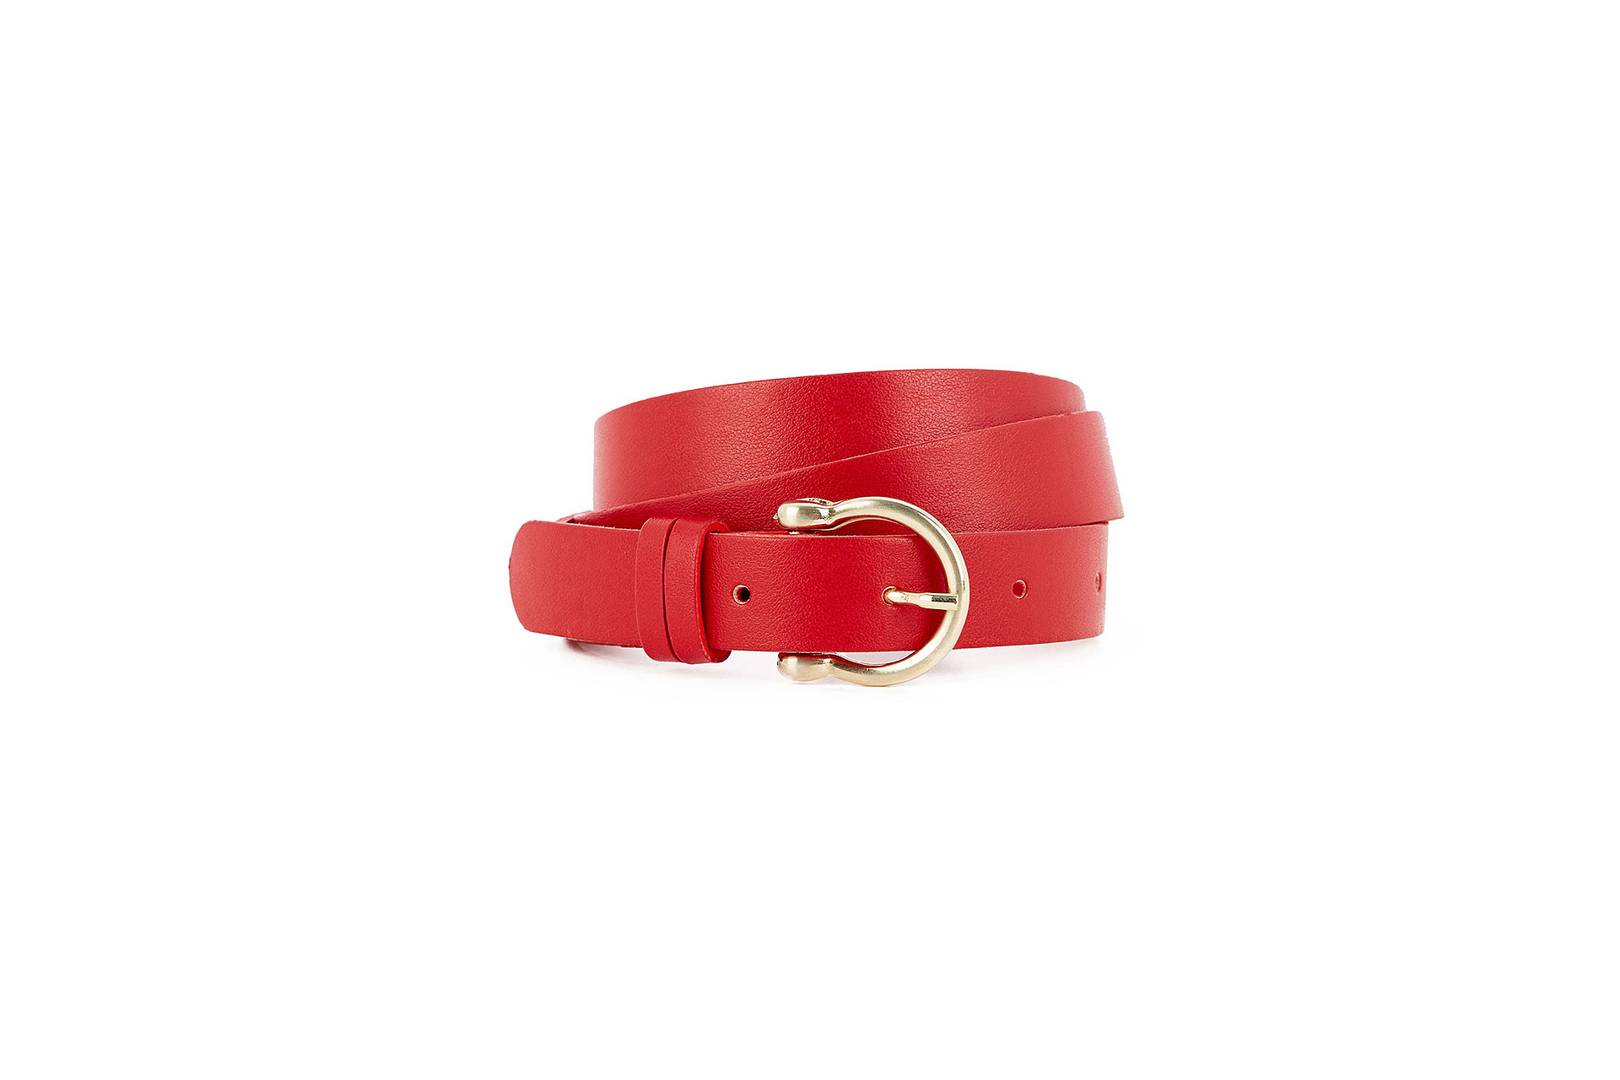 c18ab4d682a Cool Belts To Buy Right Now  Gucci Bumbag   More